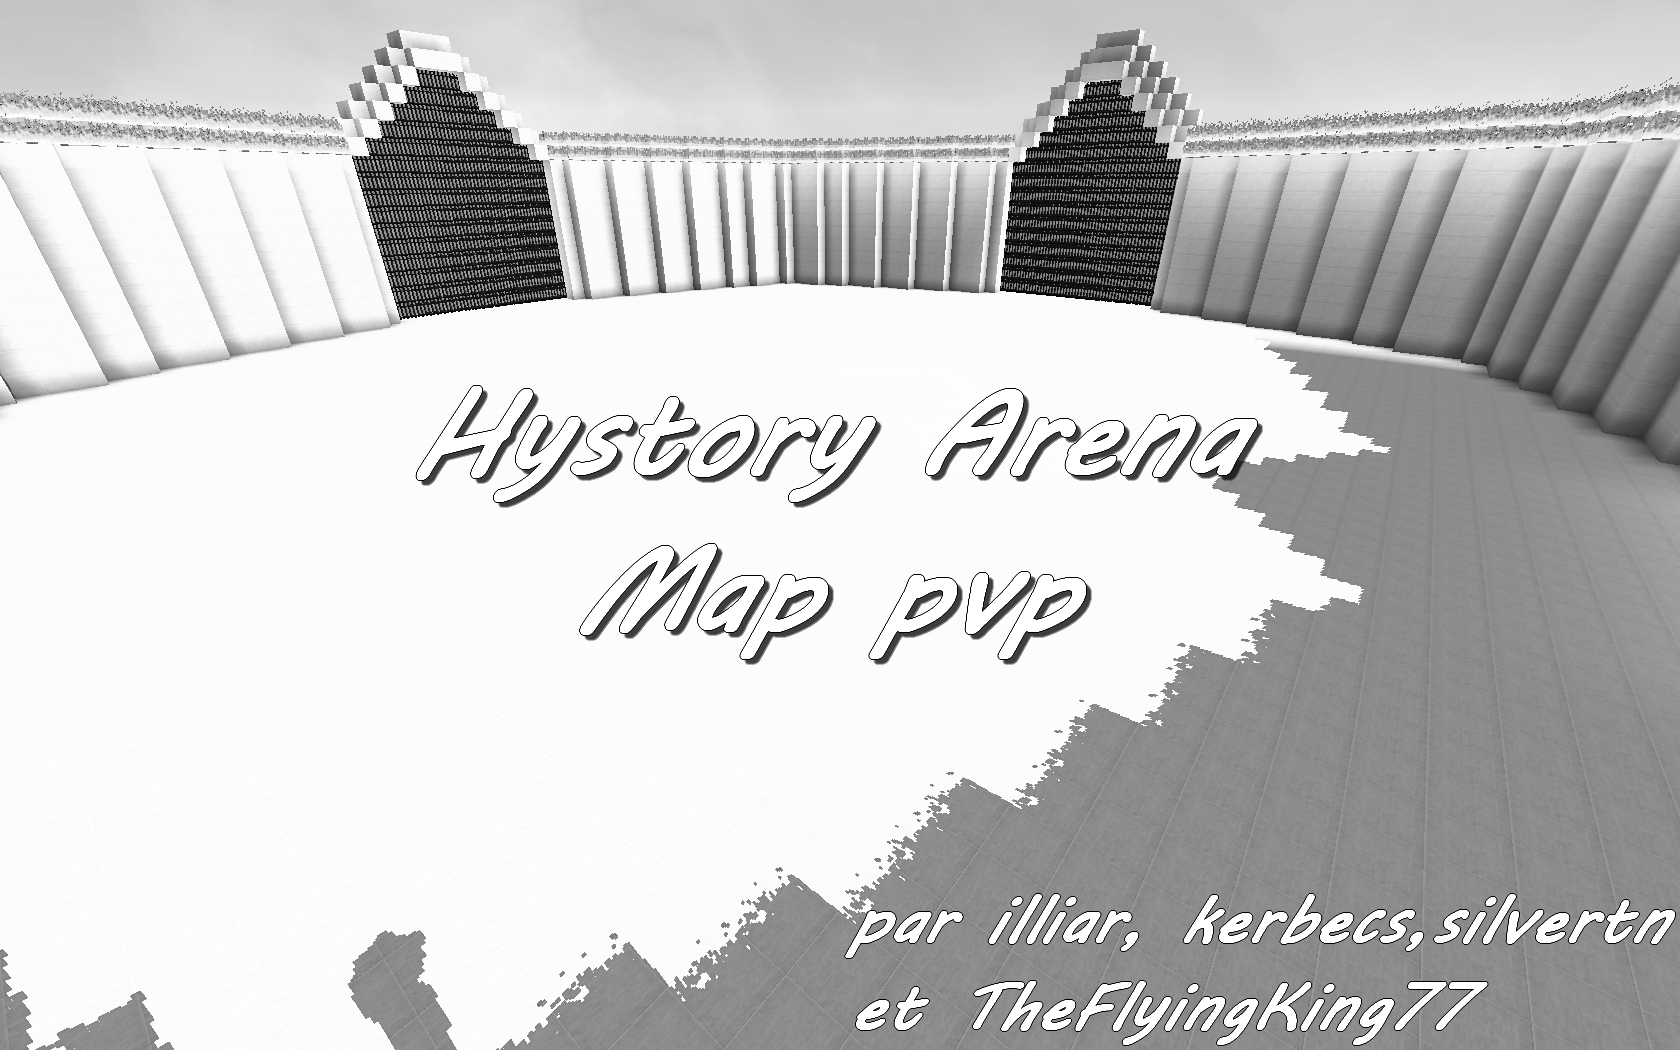 minecraft-map-pvp-hystory-arena